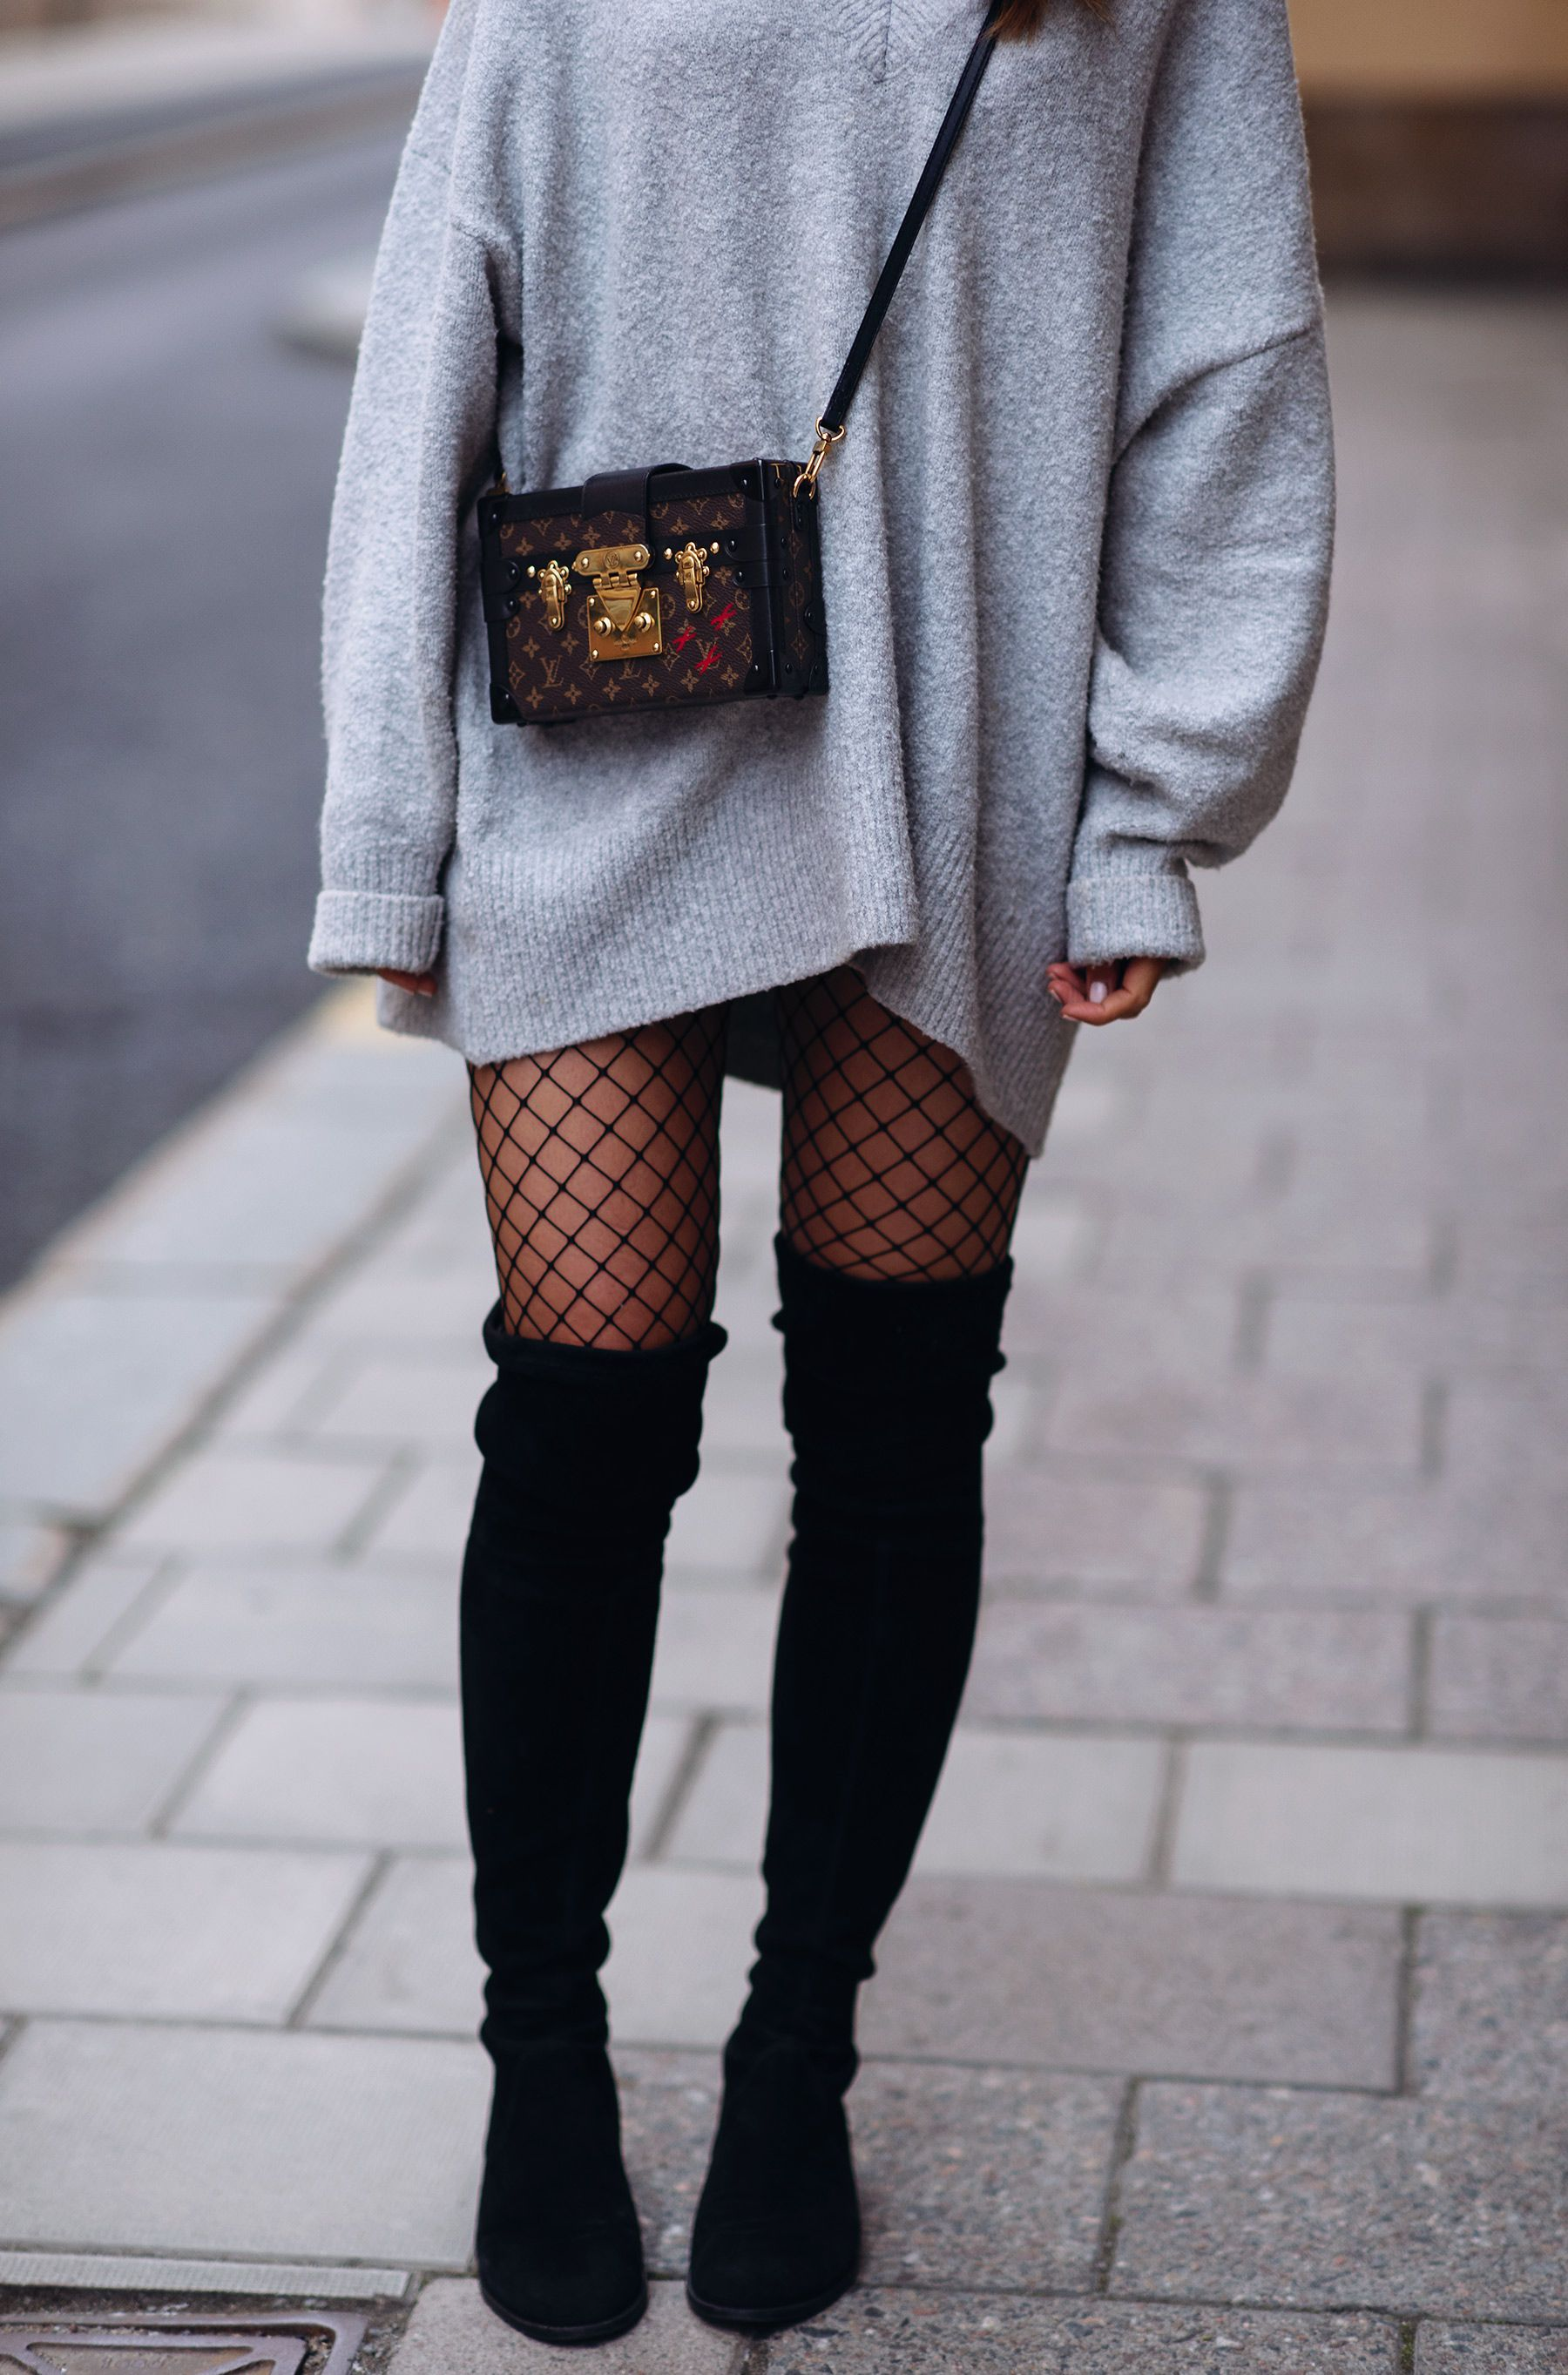 Big sweater & fishnets   Stockings outfit